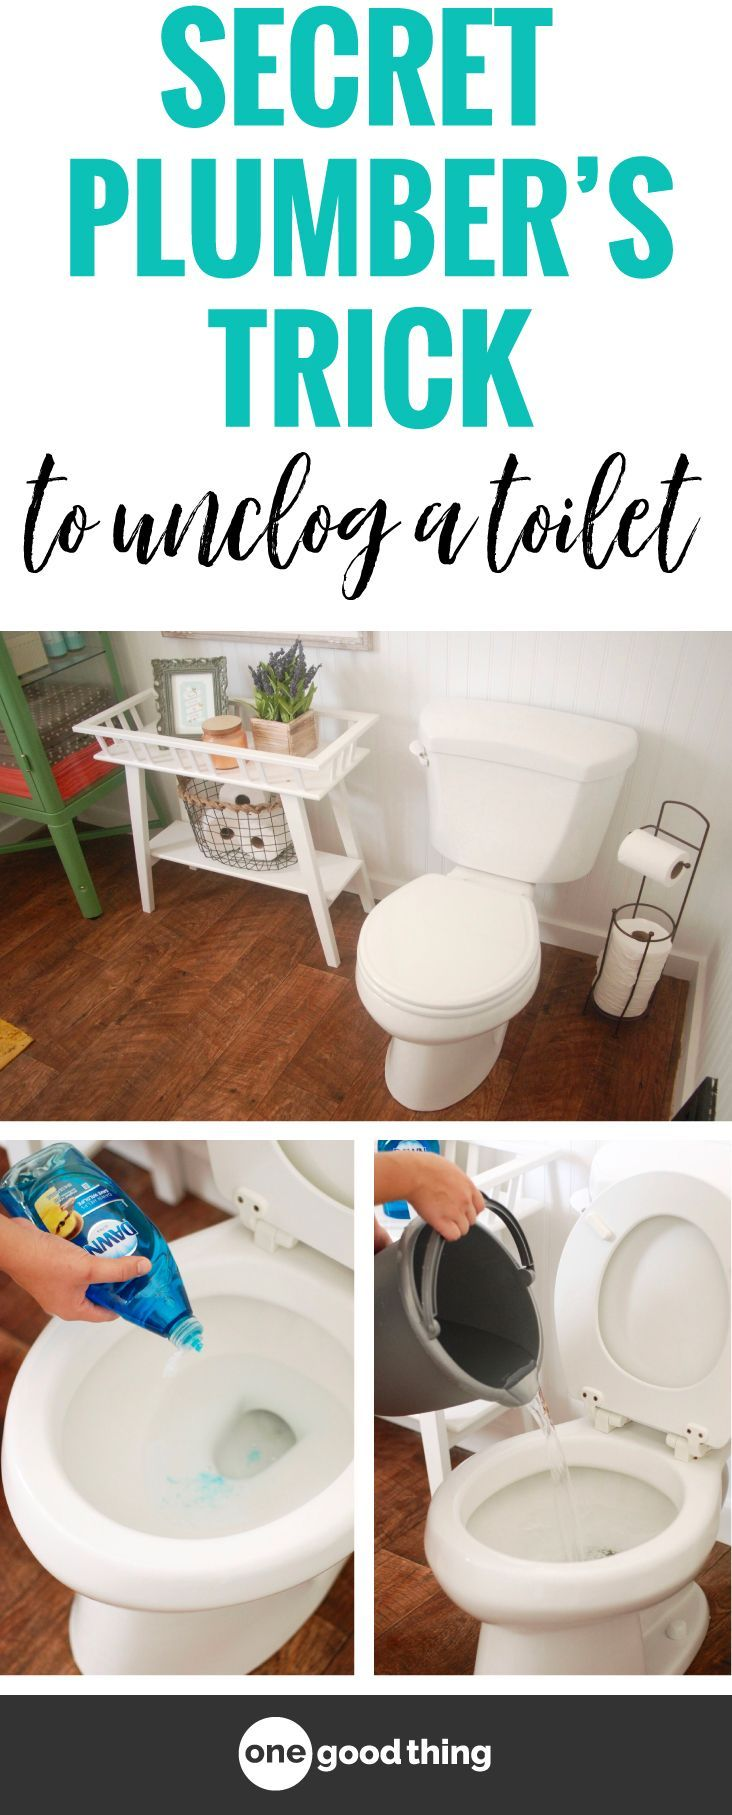 Learn How to Unclog a Toilet with this Secret Plumberus Trick